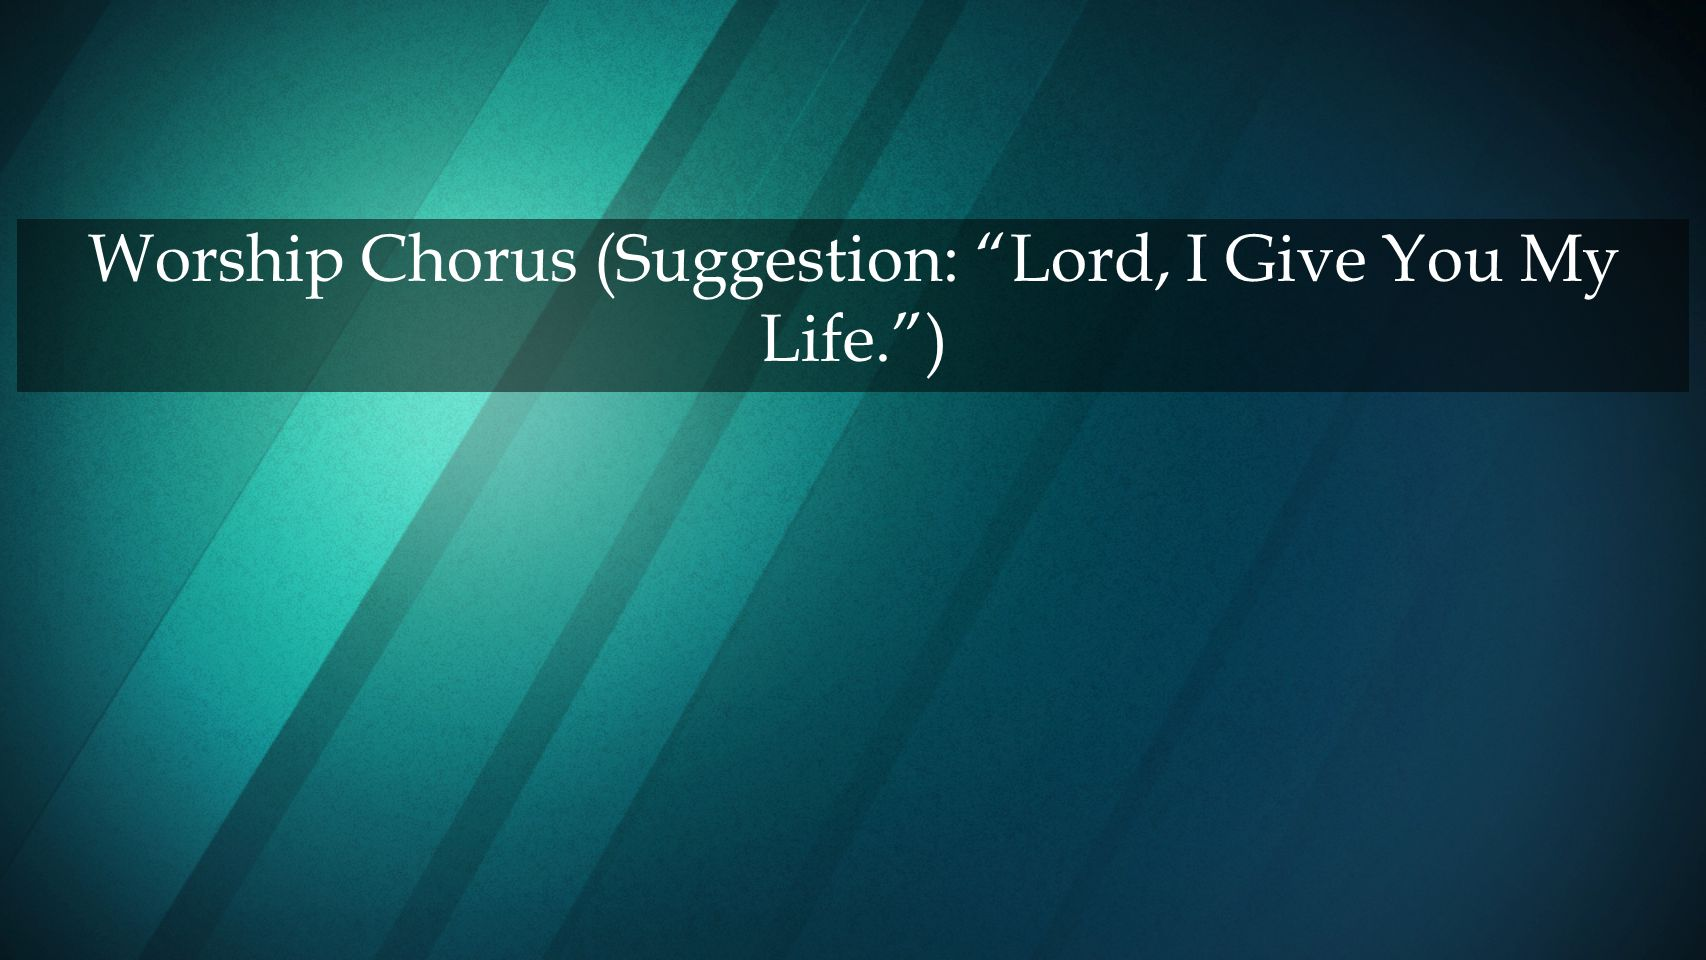 Worship Chorus (Suggestion: Lord, I Give You My Life. )